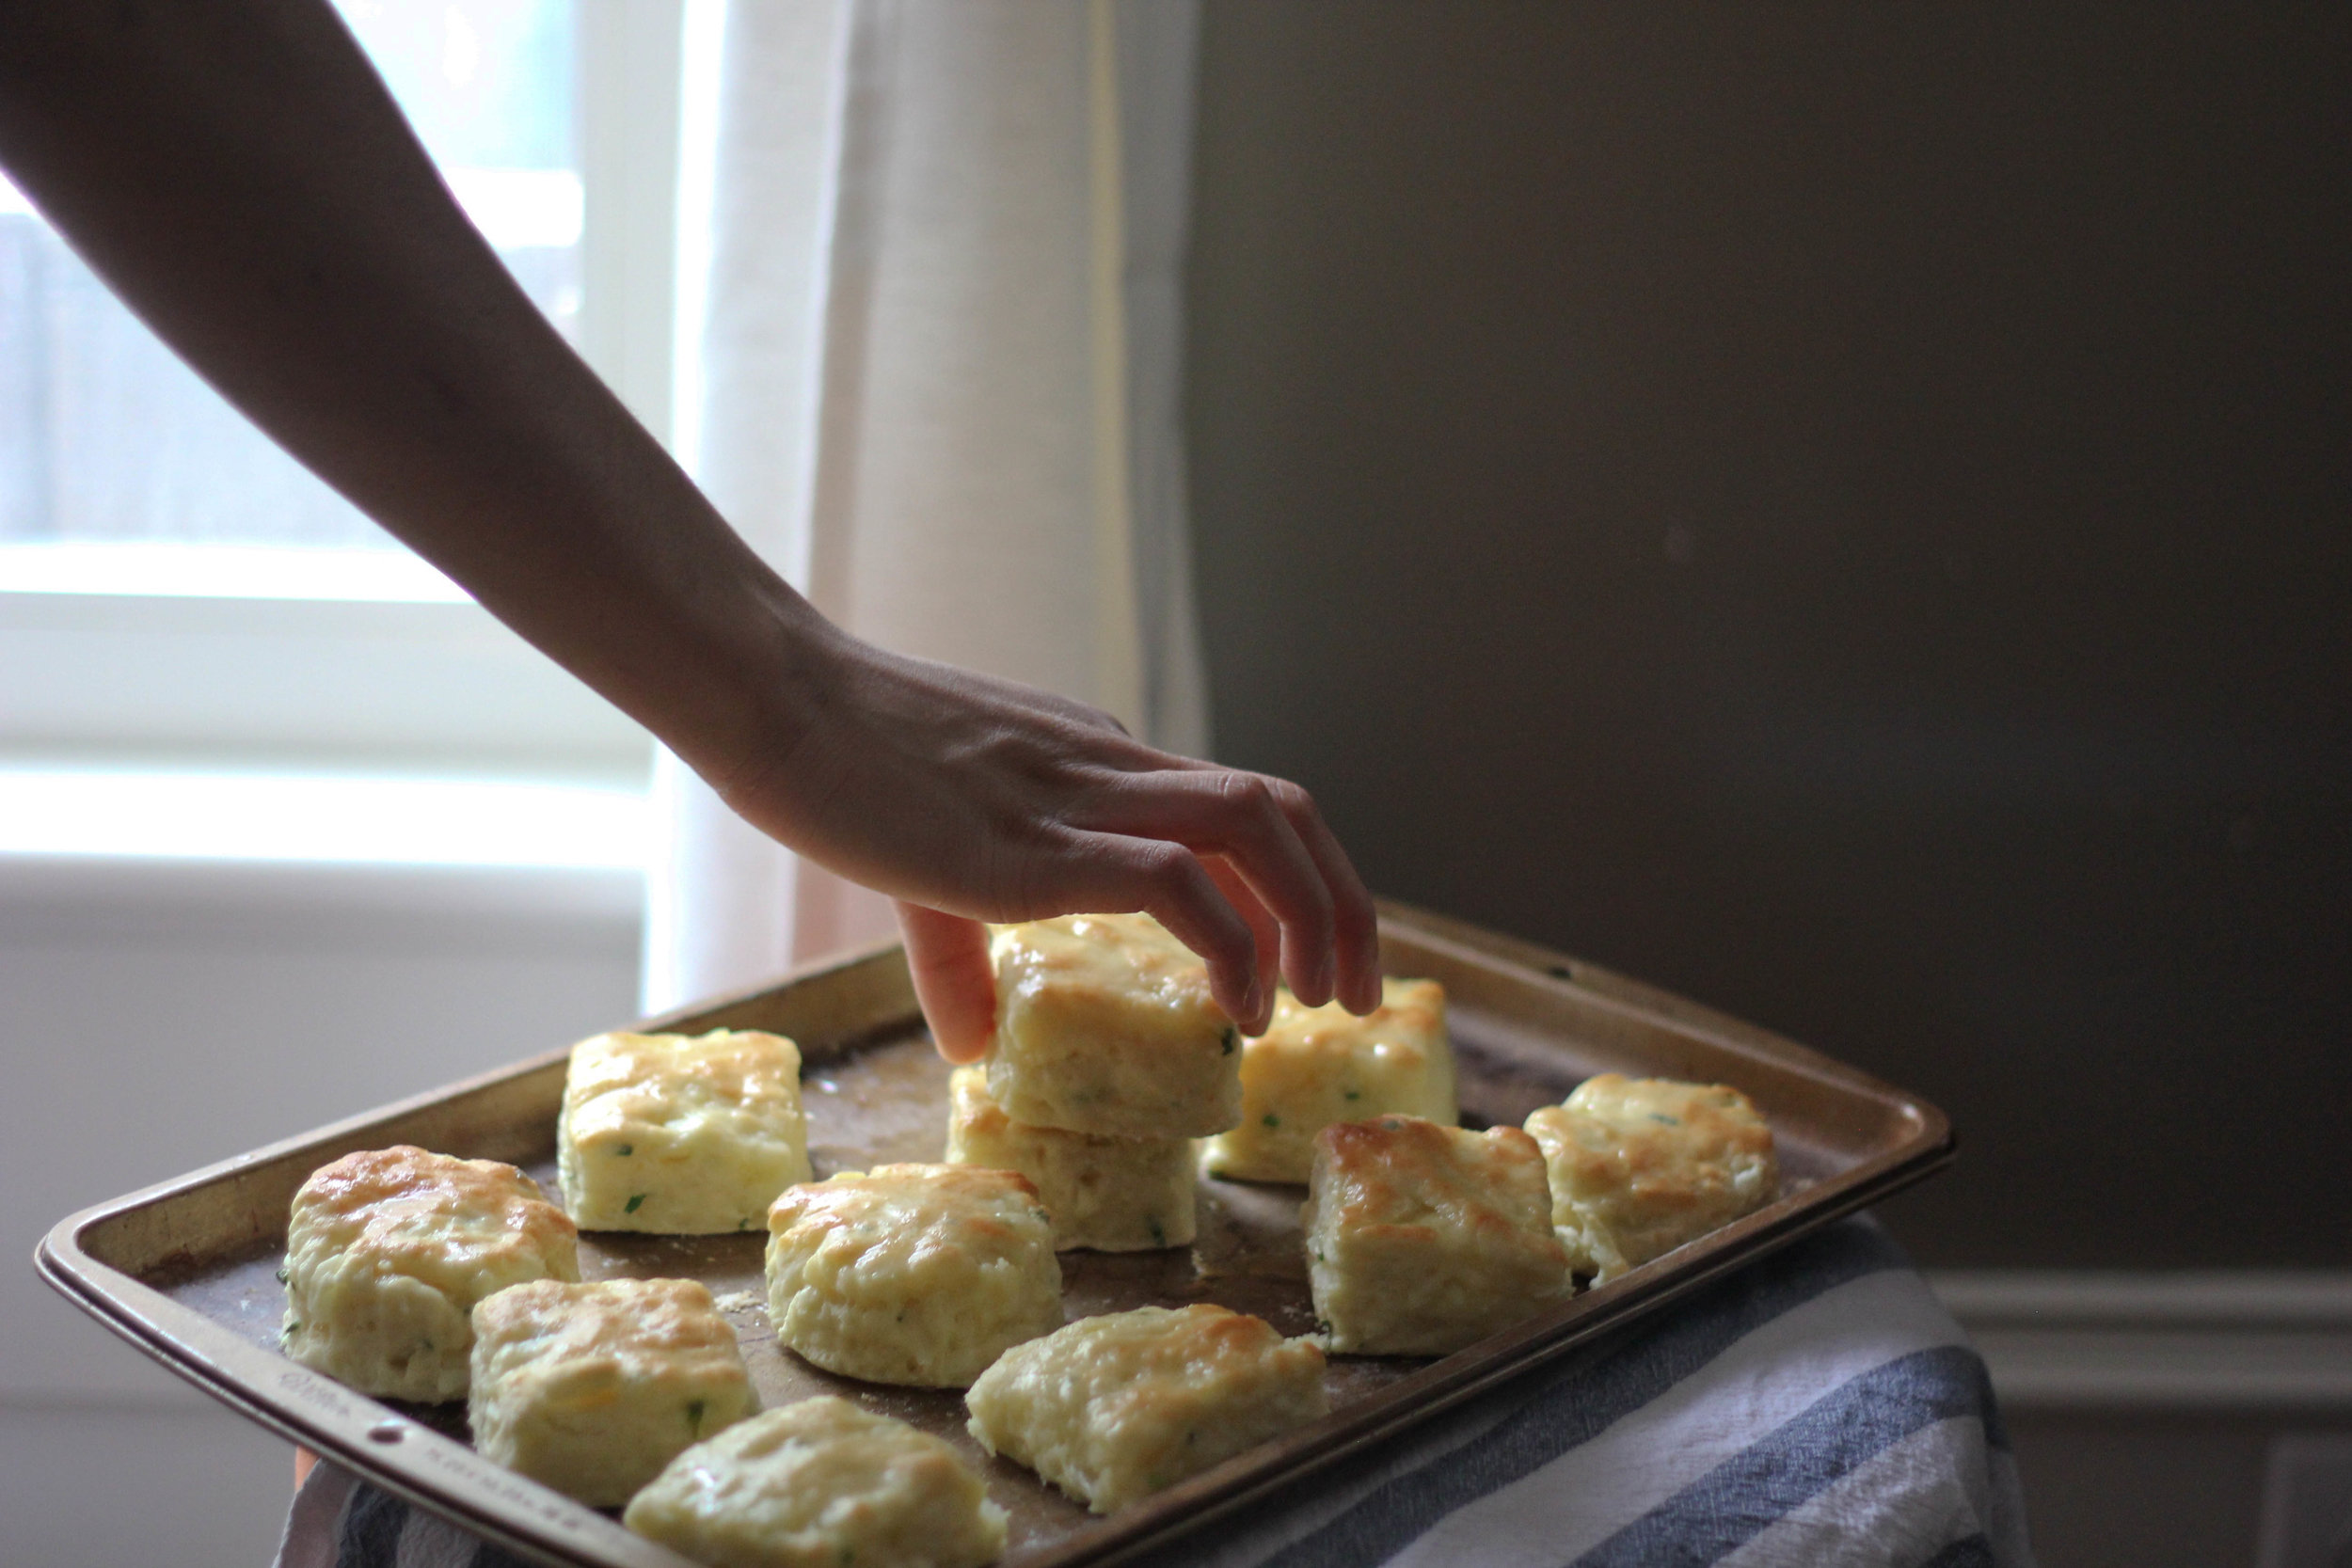 Sour-Cream-and-Onion-Biscuits-5-1-of-1.jpg